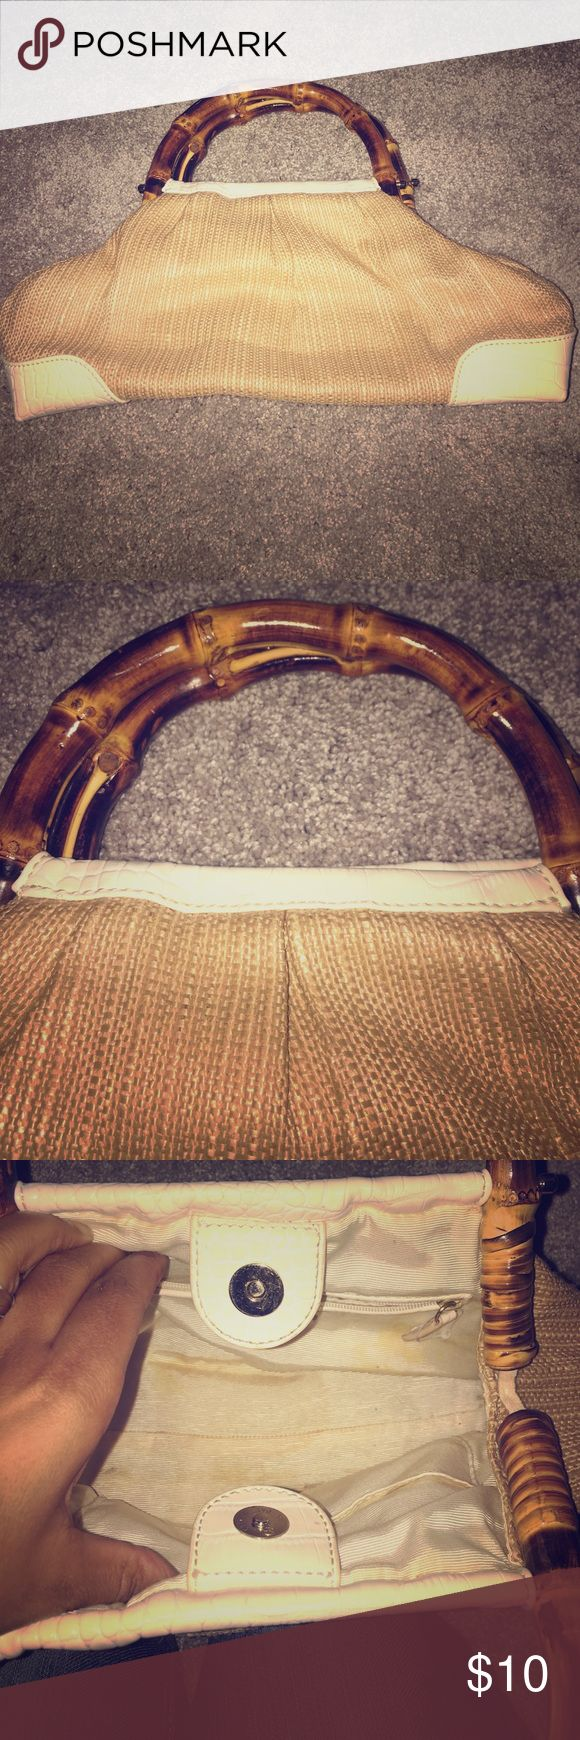 ANNE TAYLOR LOFT Bag🔸 Used anne taylor Loft bag. Has some stains on the inside. Outside no stains or rips. Bamboo handle. Very Cute for summertime or tropical vacation🌴used only a few times anne taylor loft Bags